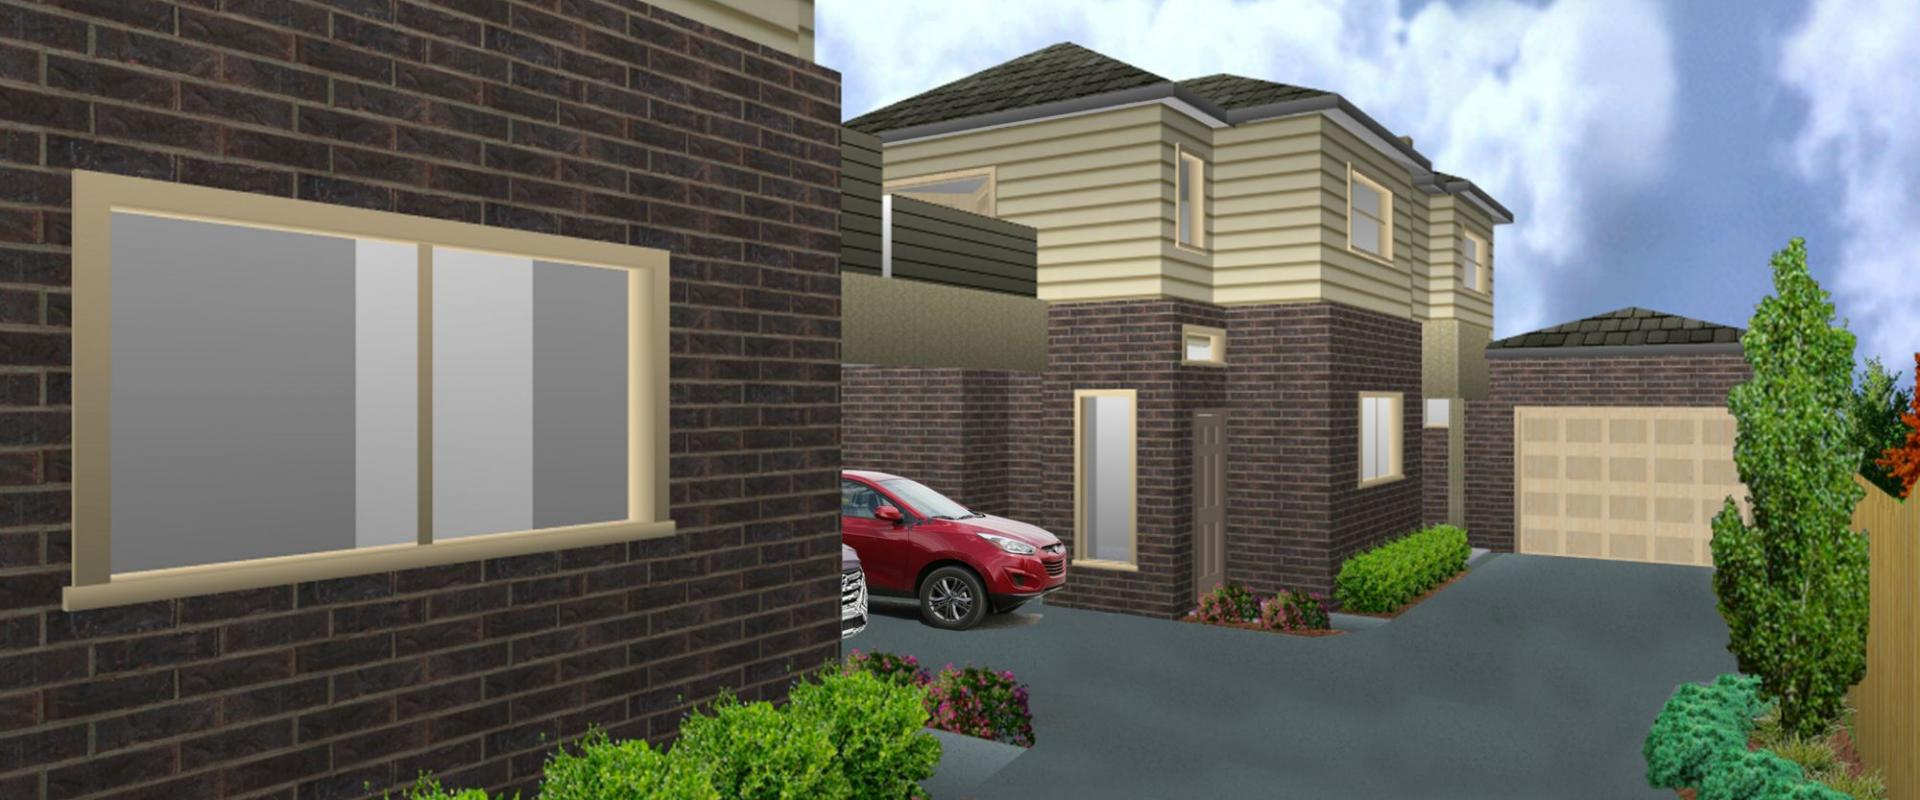 Weston Real Estate Melbourne - Secure Your Future Now - Buy Off The Plan